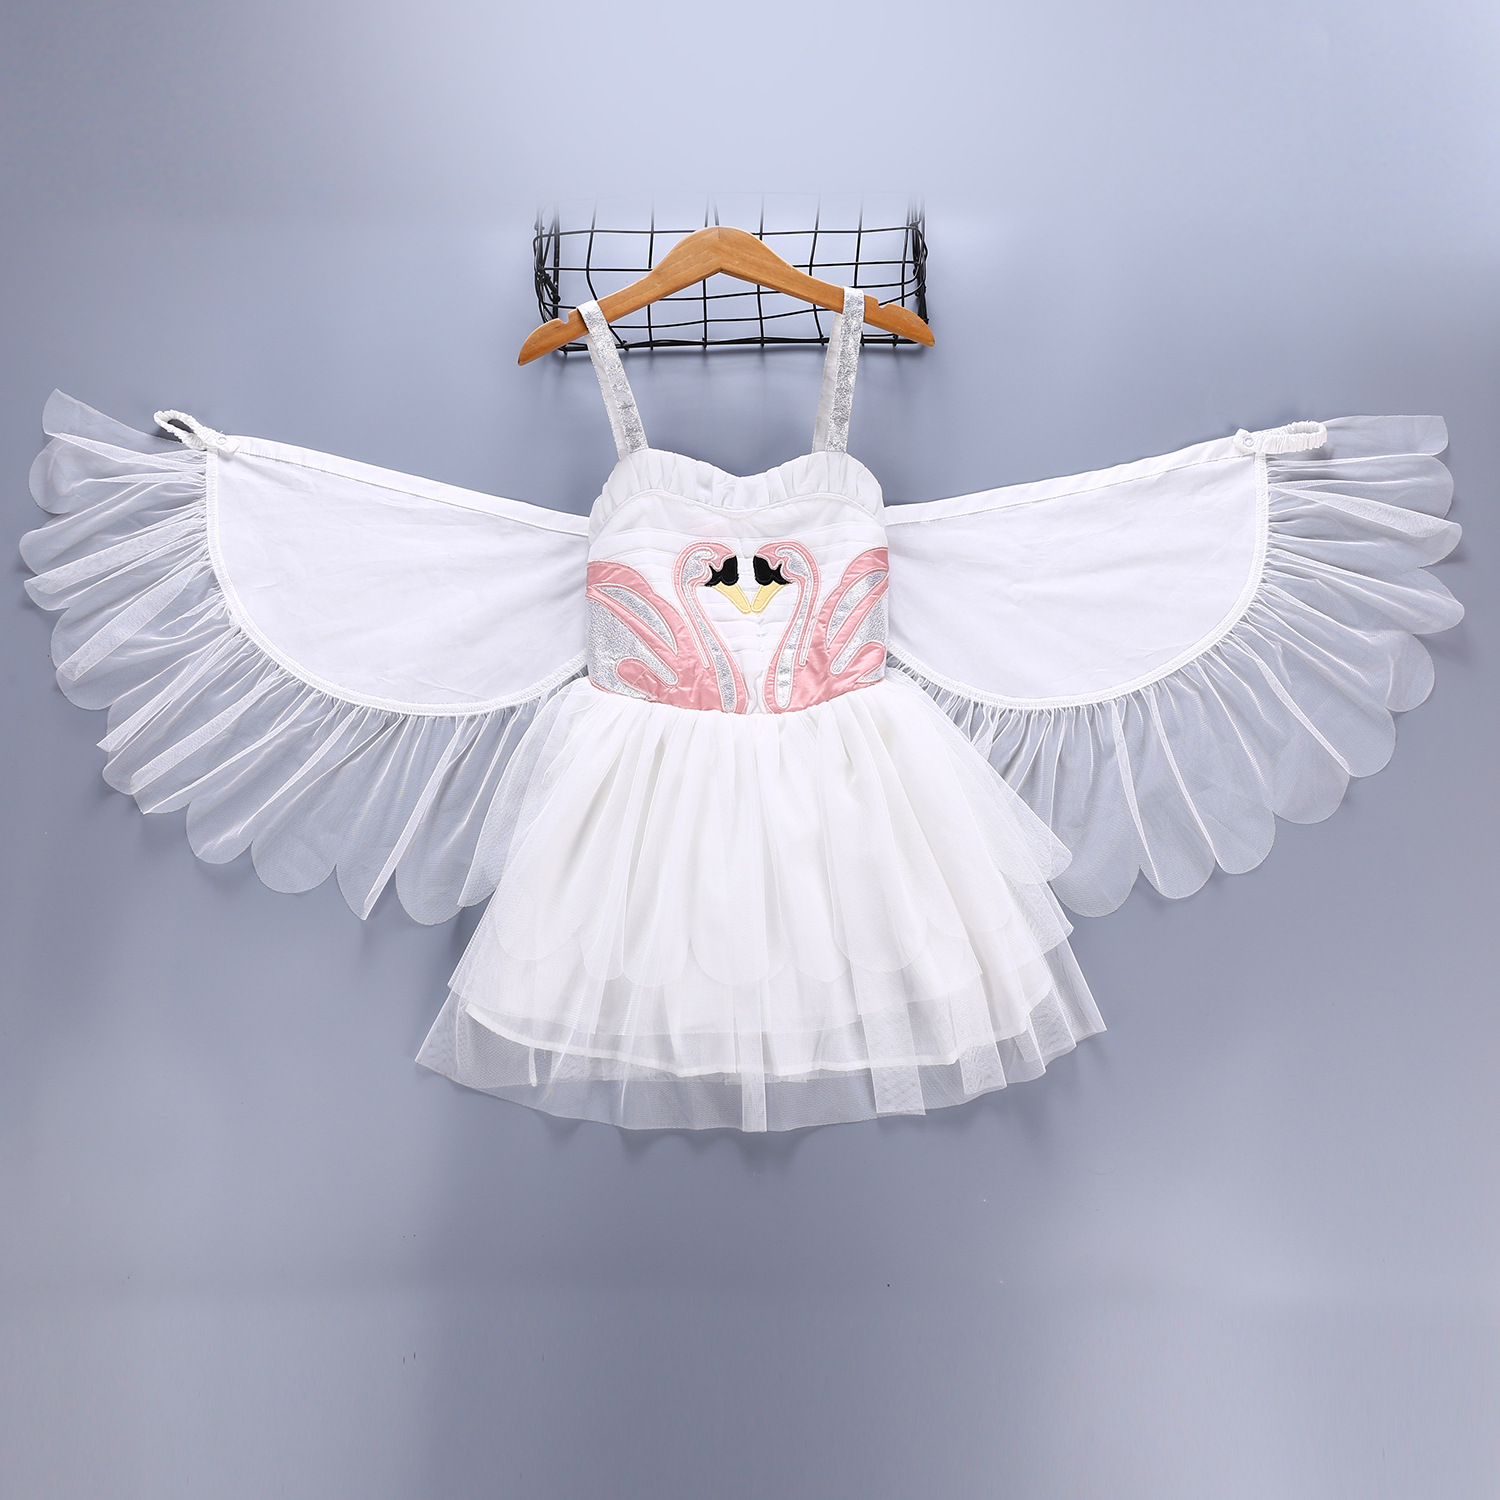 Flamingo Tutu Dress for Girls Dance Clothes Baby Kids Christmas Party Dresses Cartoon Removable Angel Wings Birthday Child Cloth